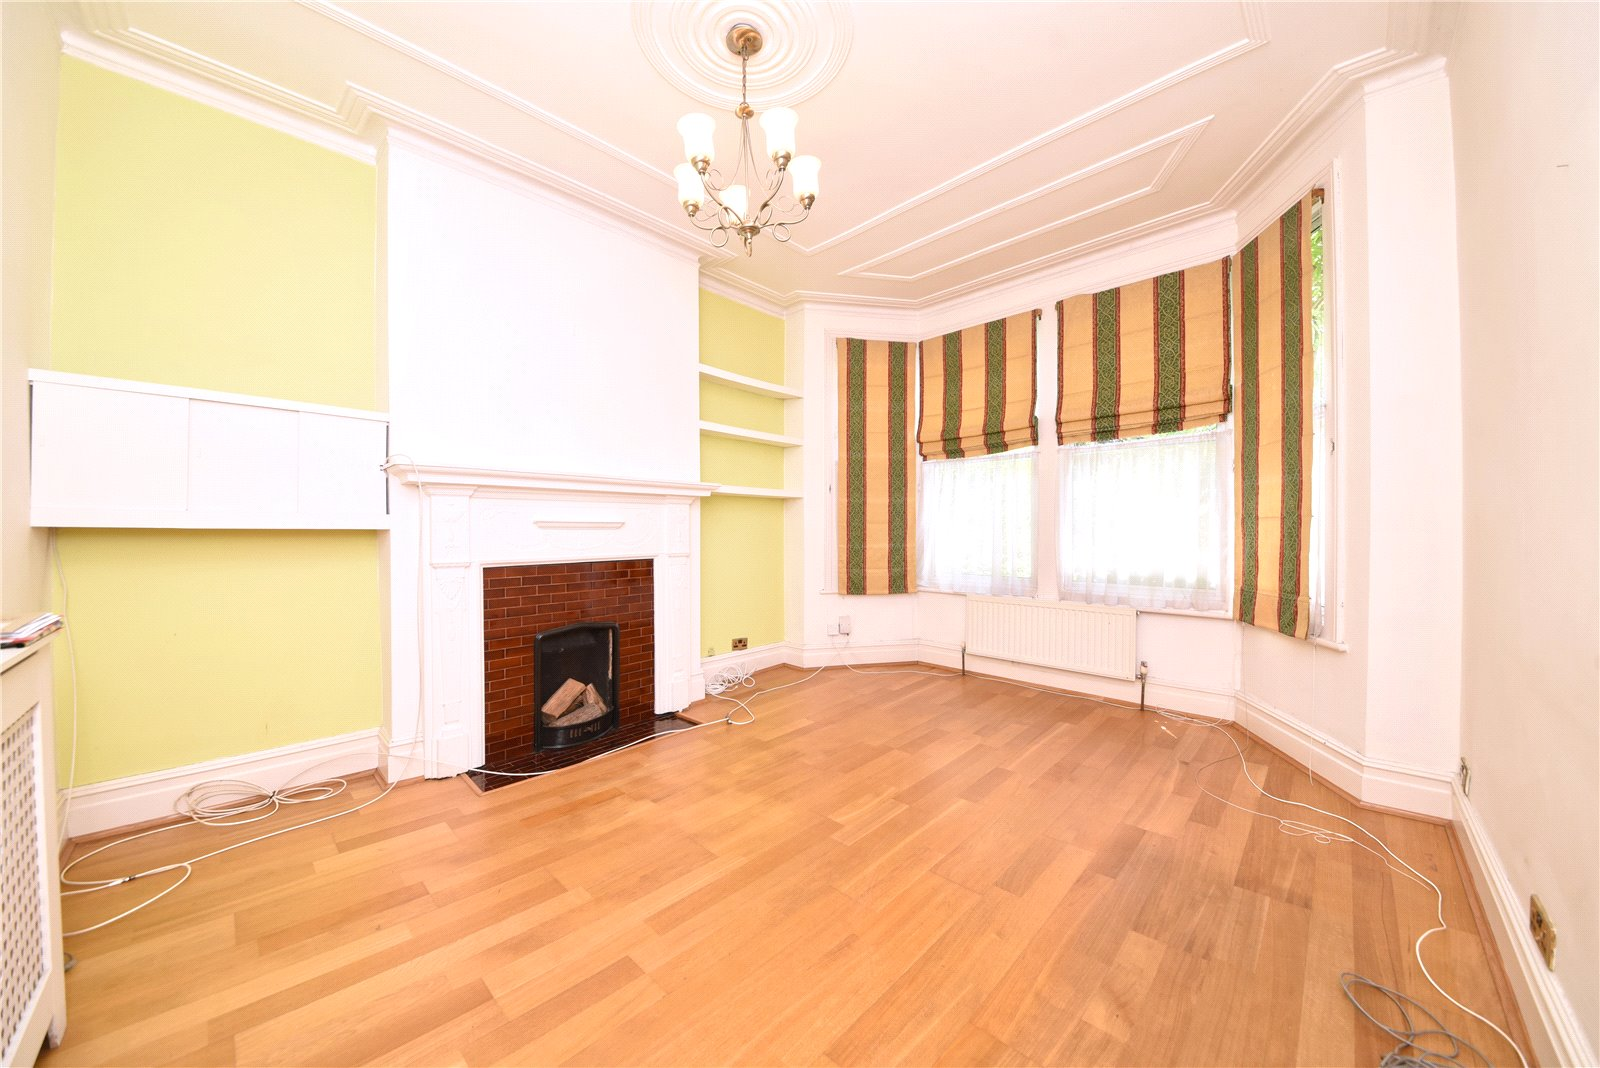 4 bed house for sale in Finchley, N3 2AR  - Property Image 2